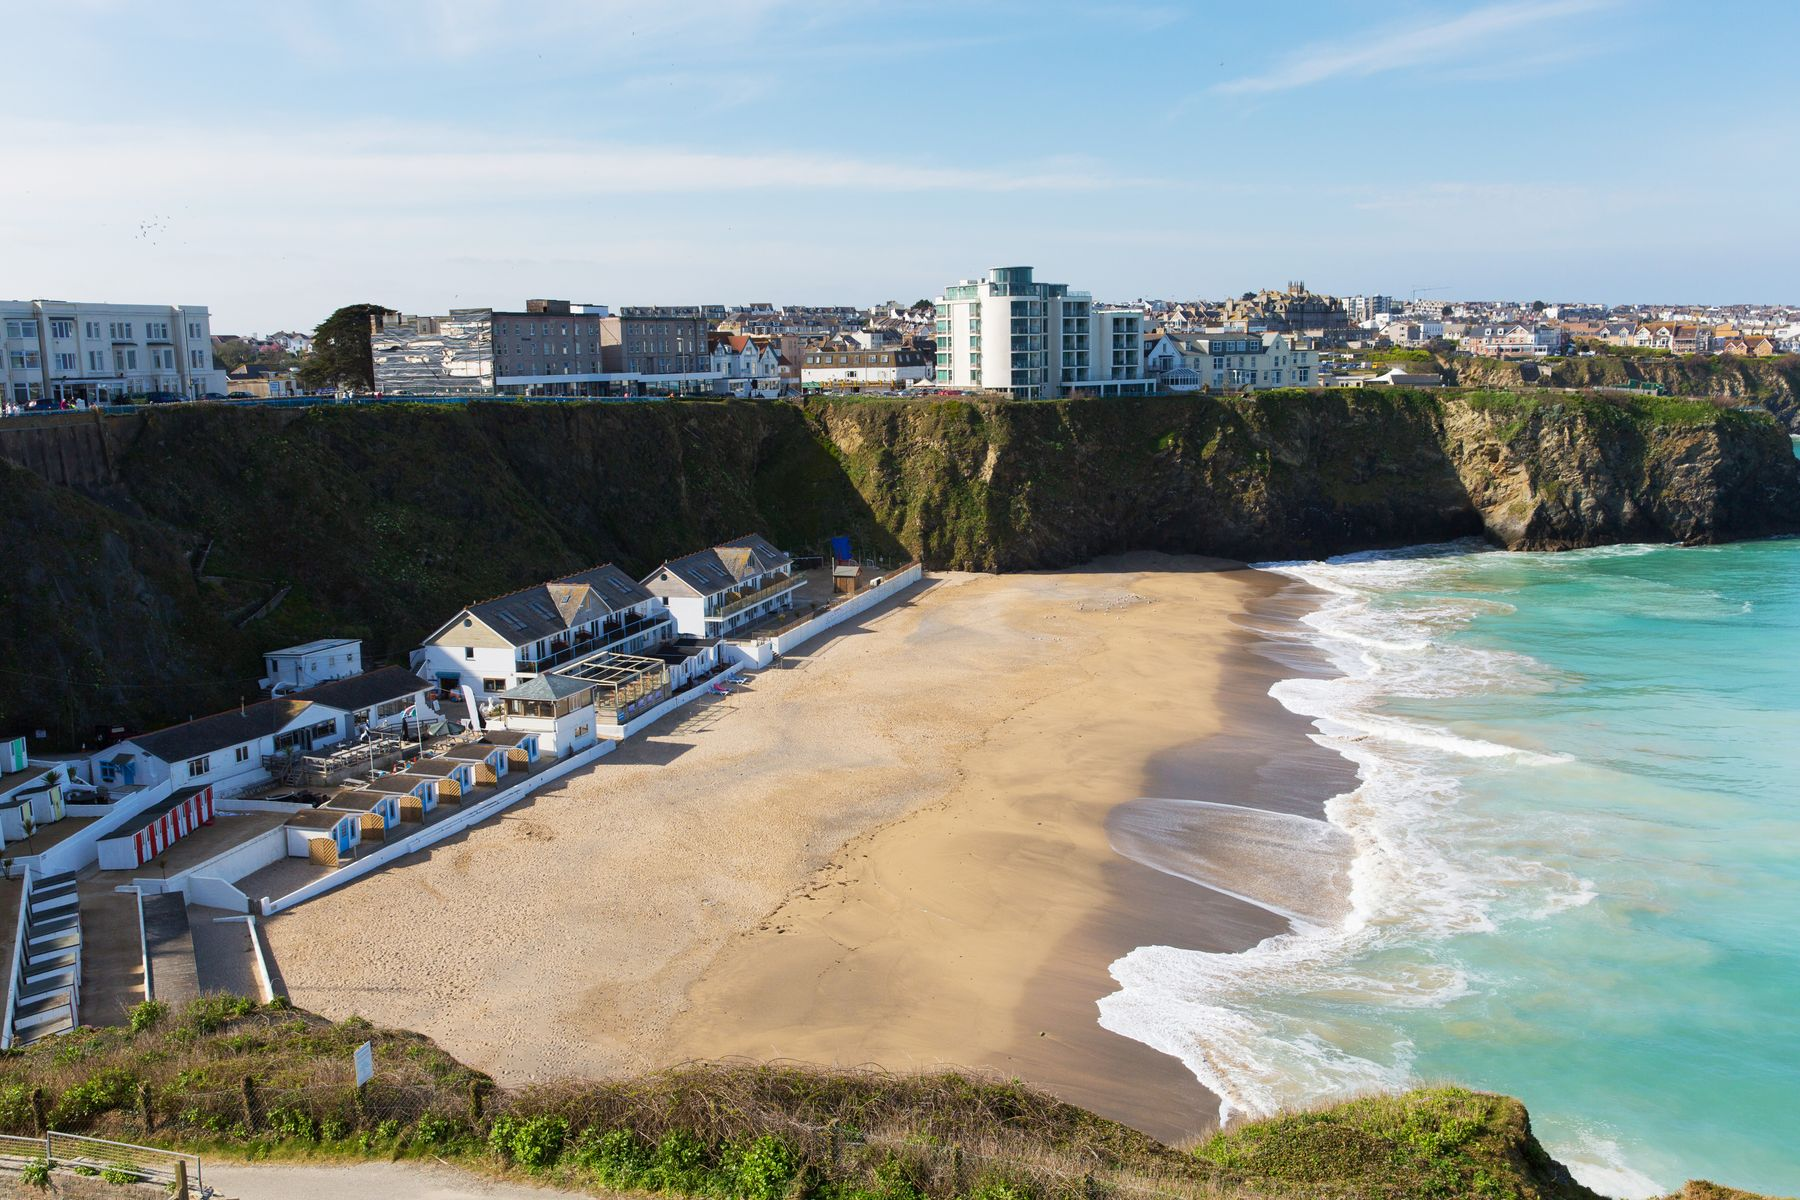 Tolcarne beach in Newquay. one of the best places to visit in Cornwall for sea and surf